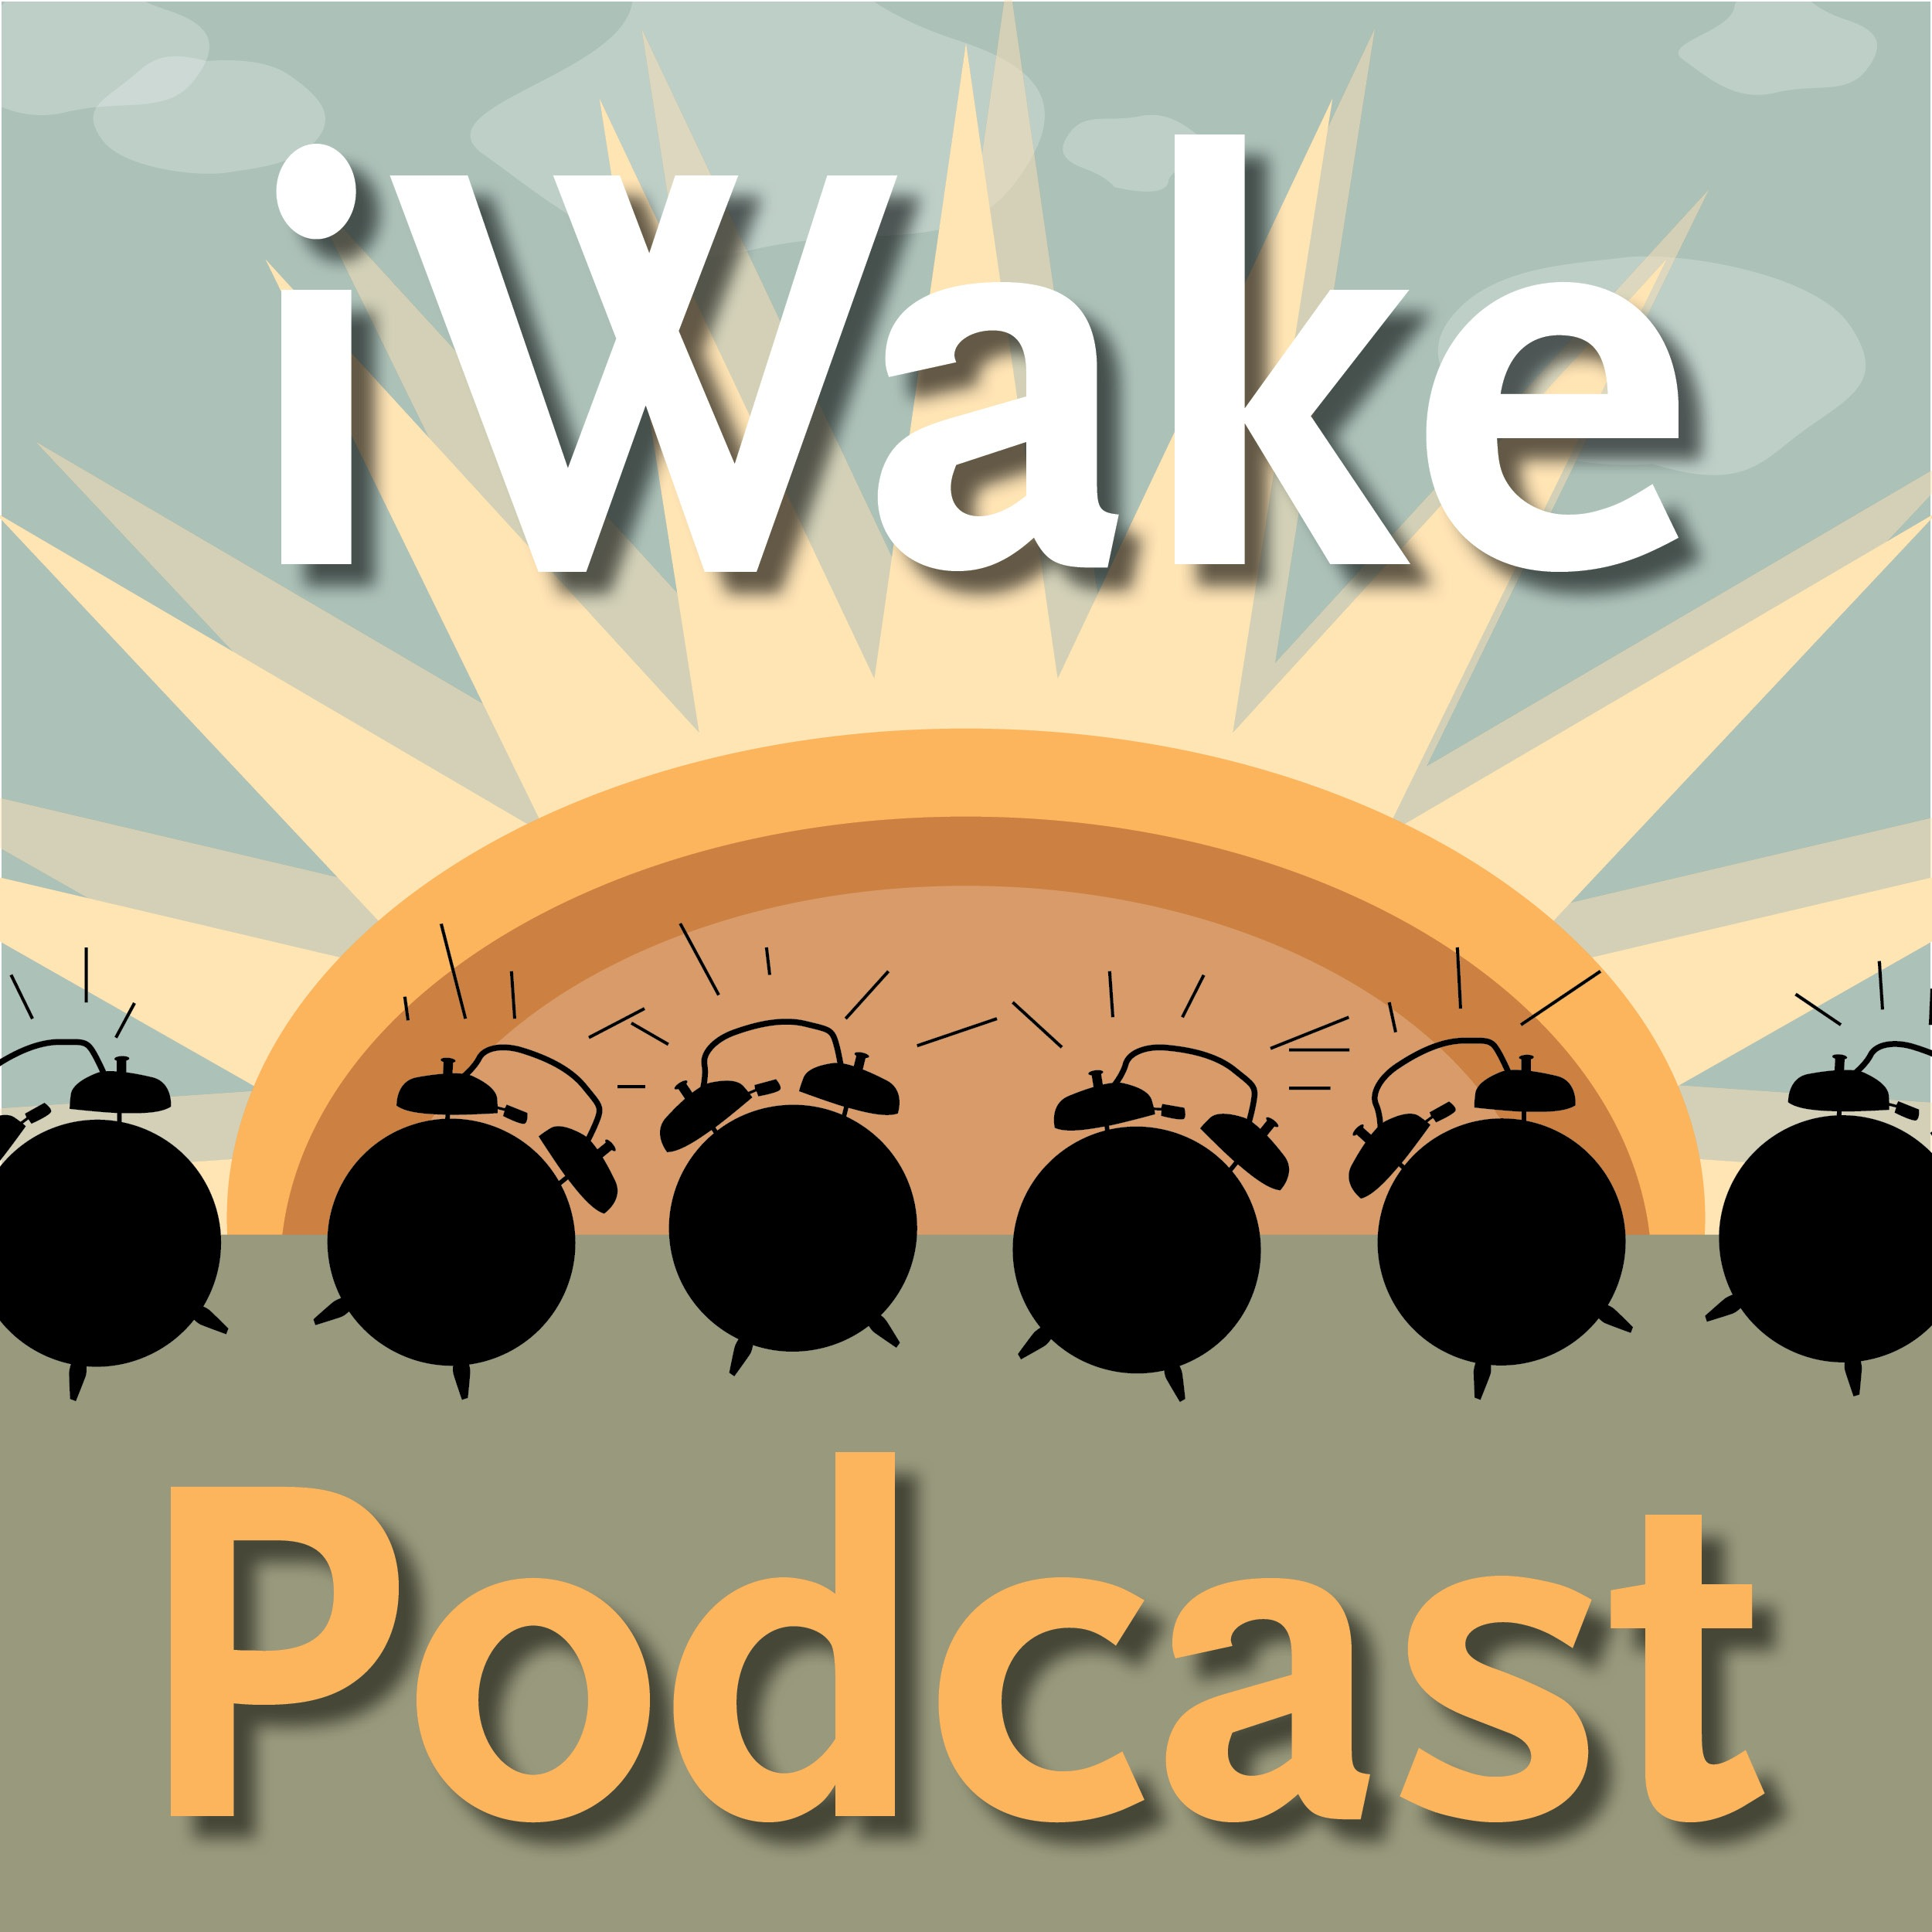 iWake Podcast